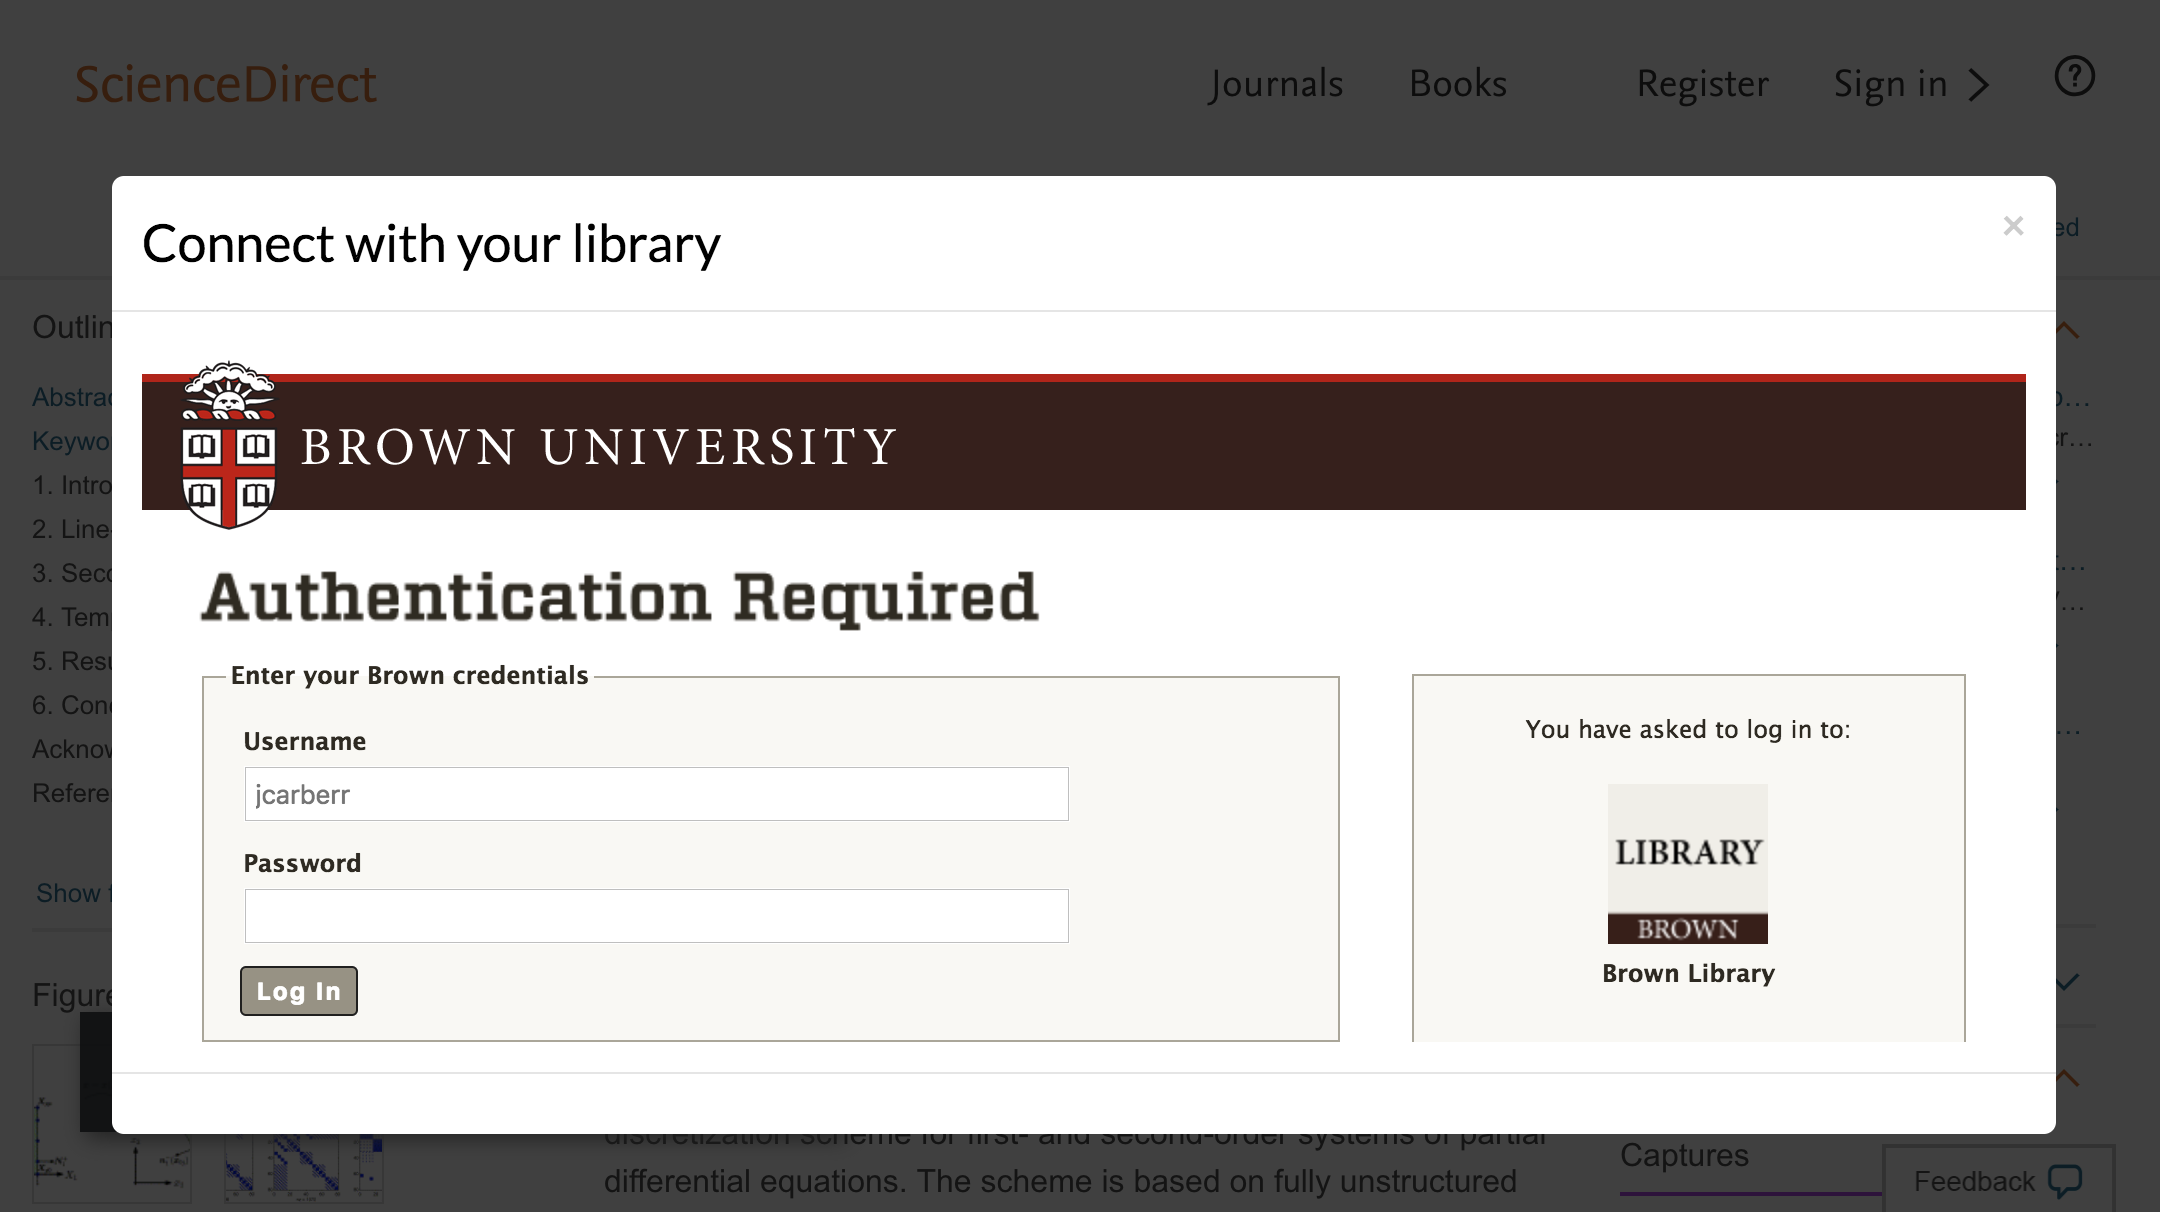 Enter Brown University credentials to access journal subscriptions.